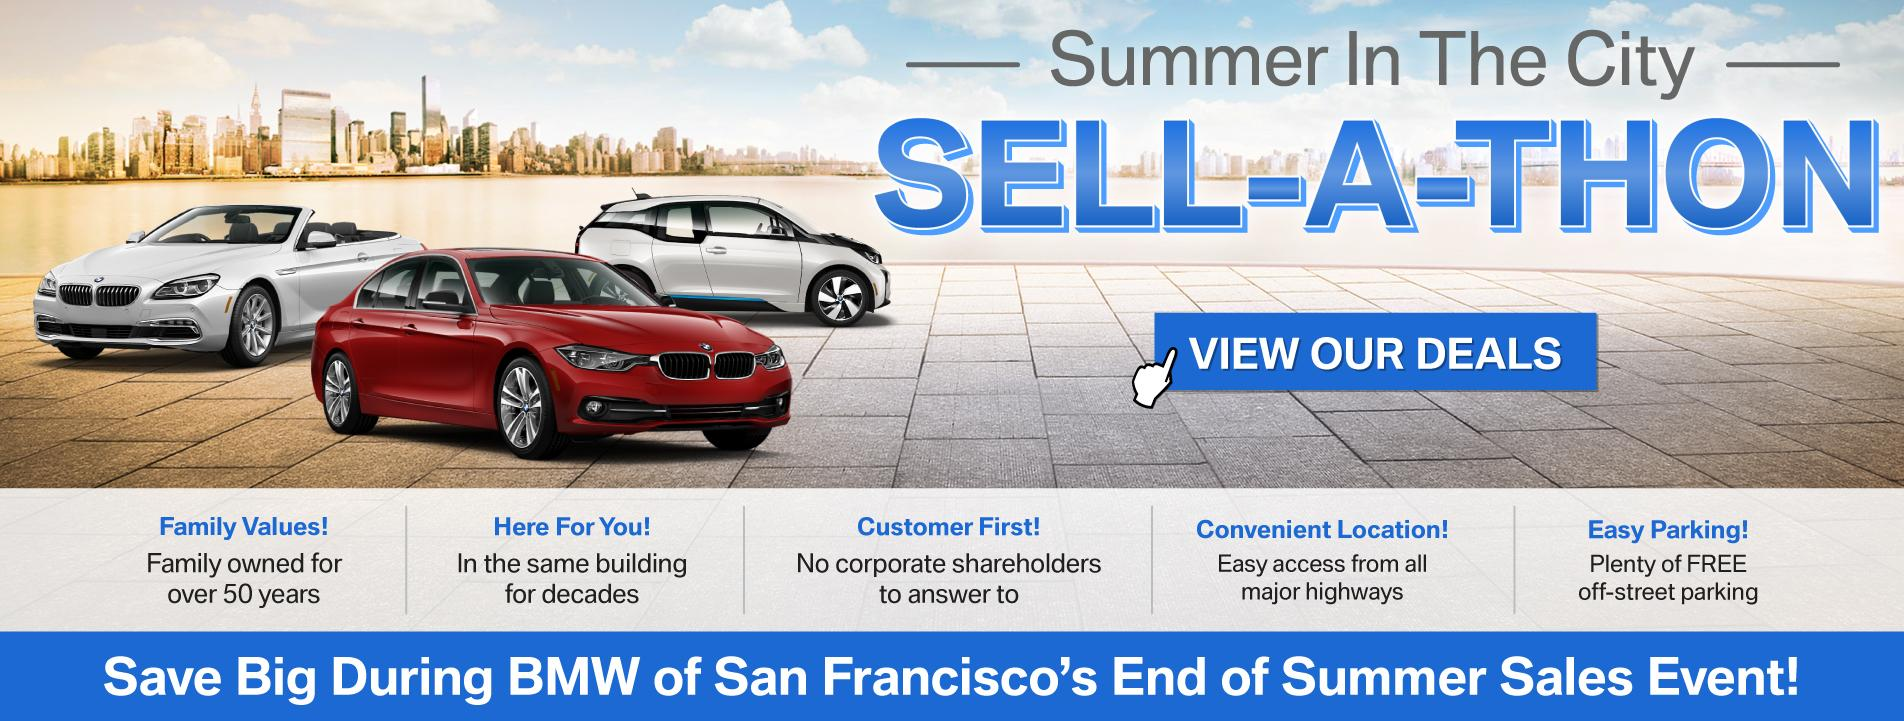 BMW of San Francisco End of Summer Sales Event